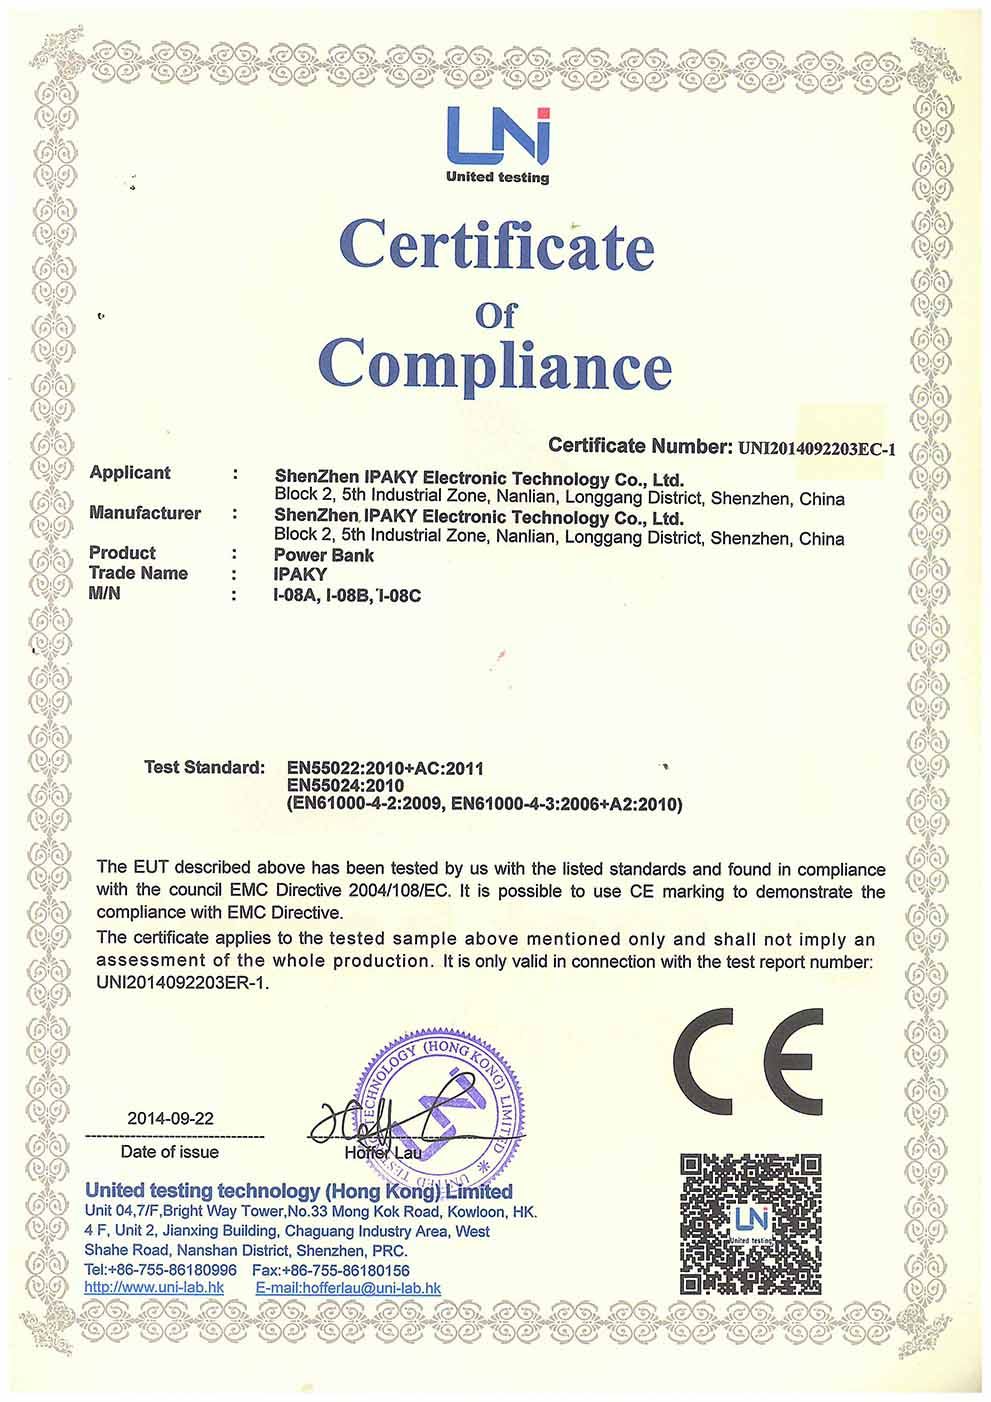 Company Overview - Shenzhen Ipaky Electronic Technology Co , Ltd